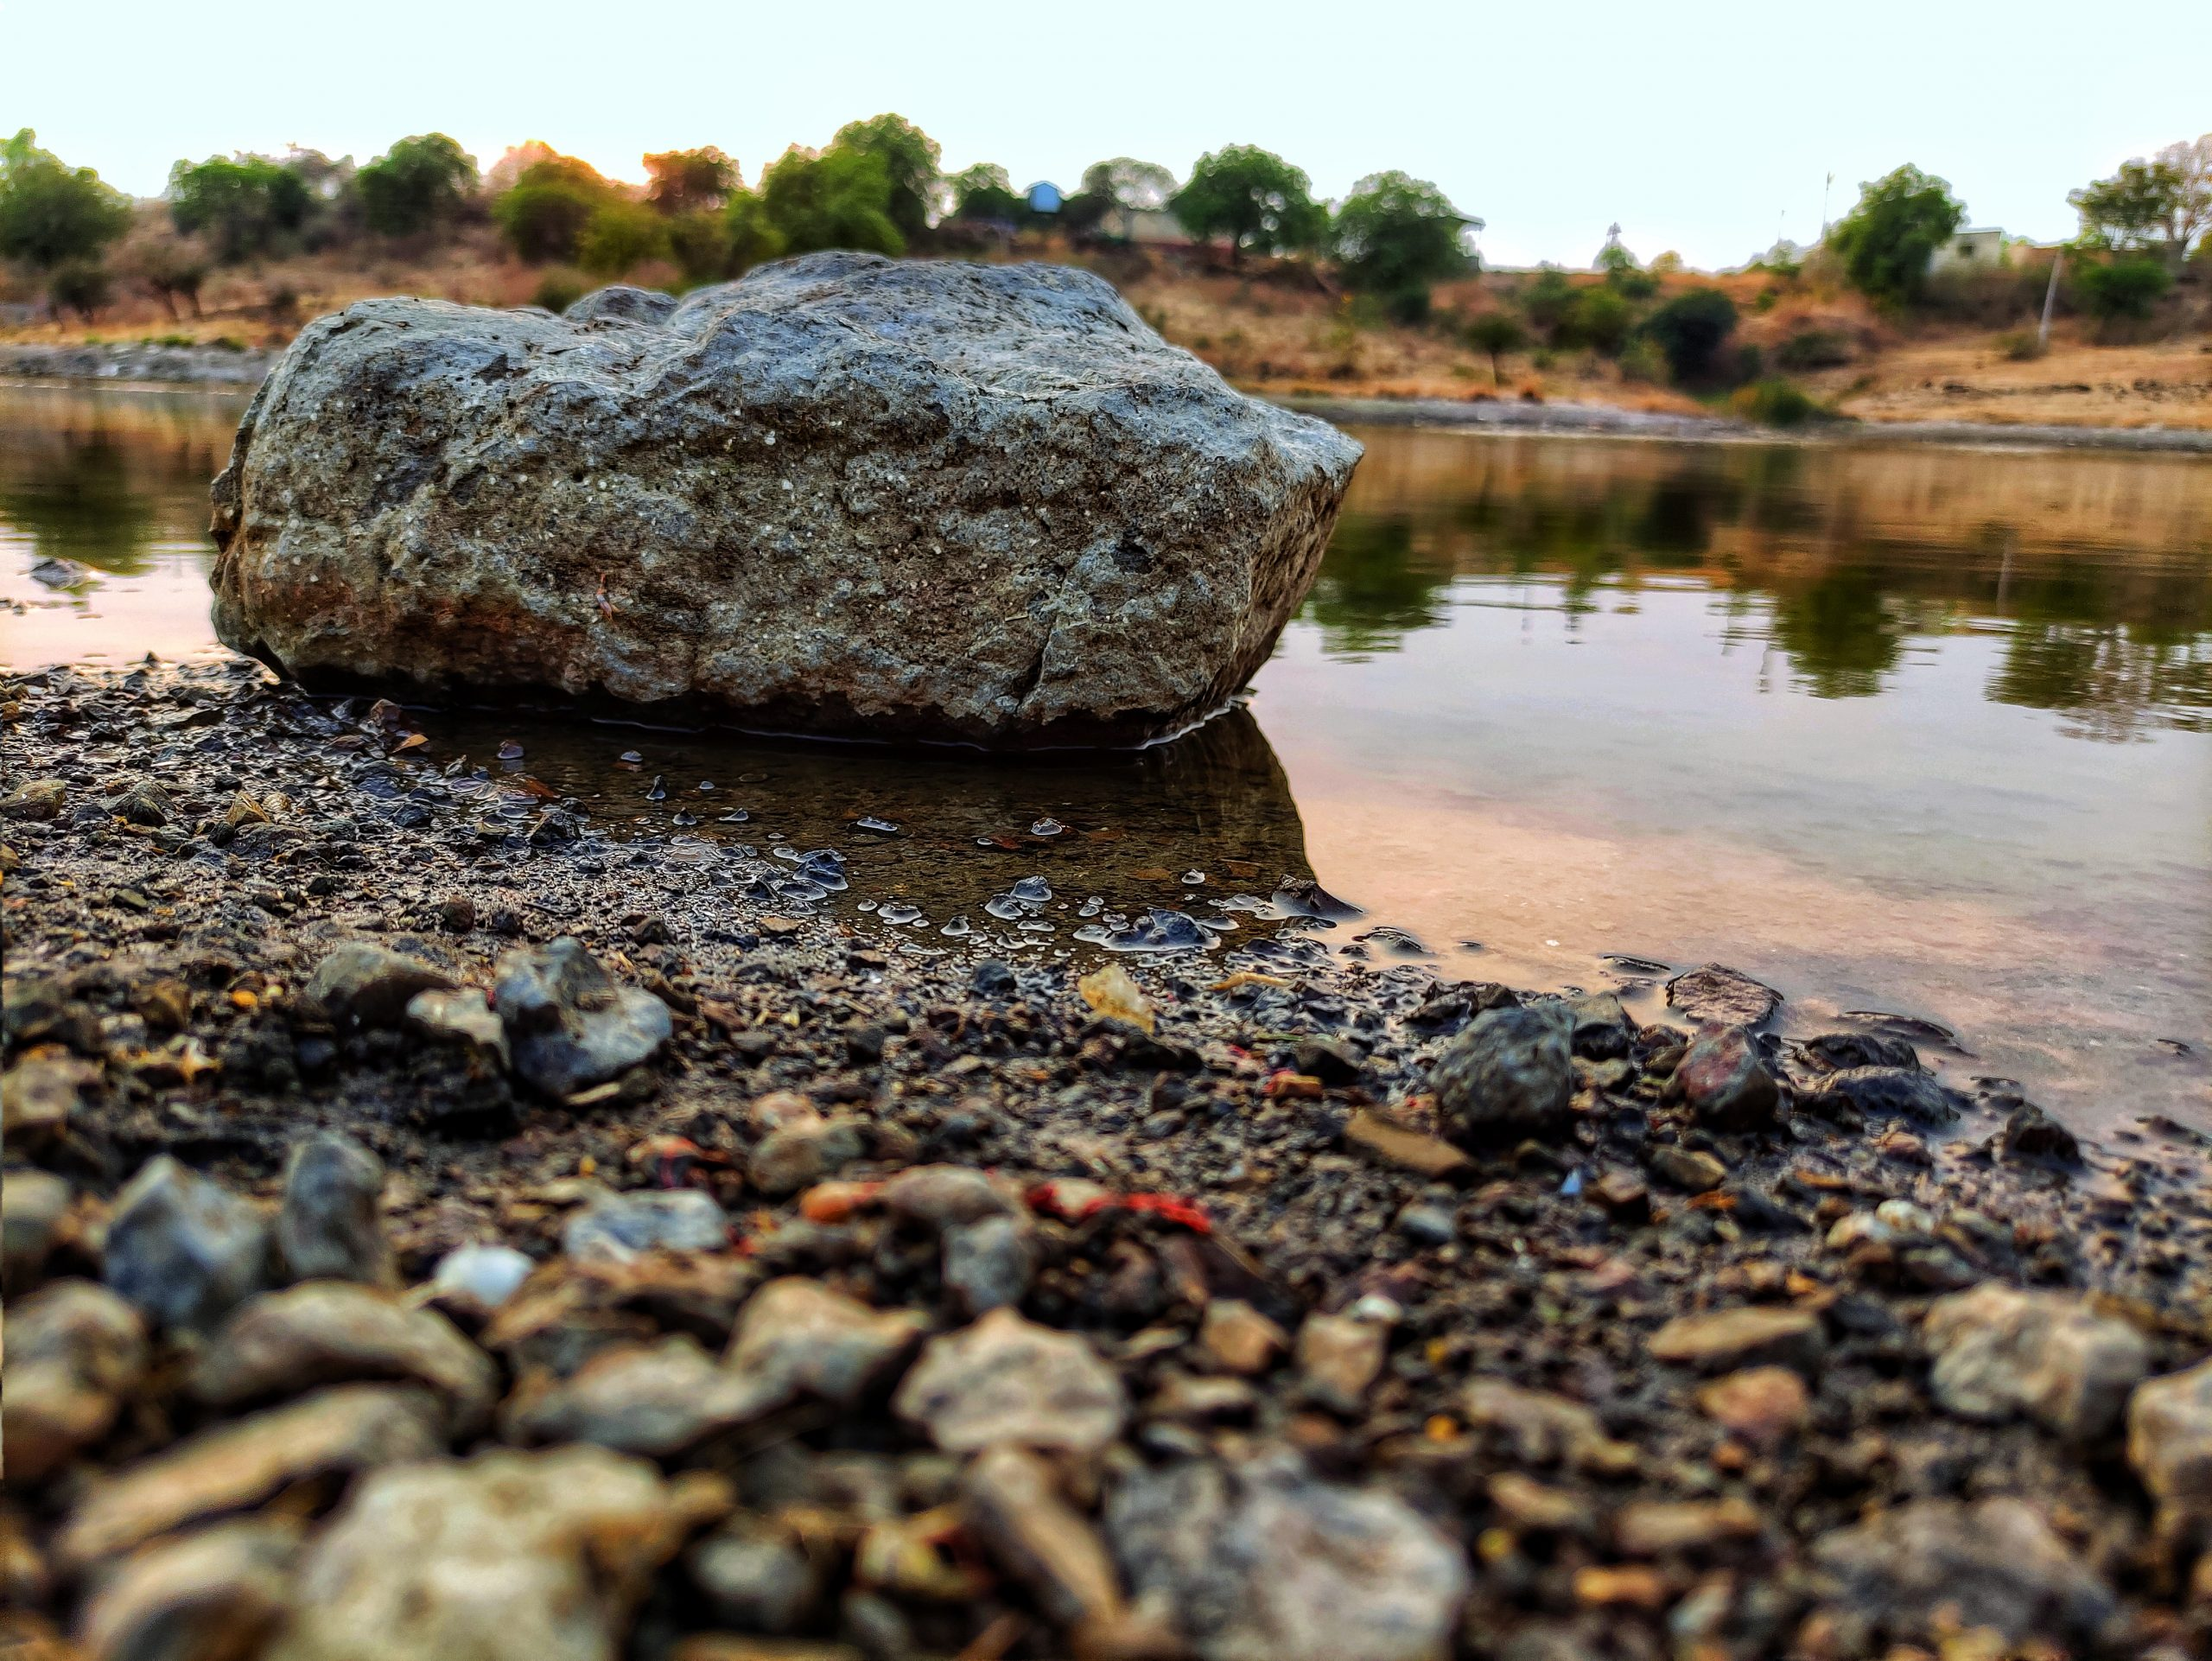 Rocks in the river